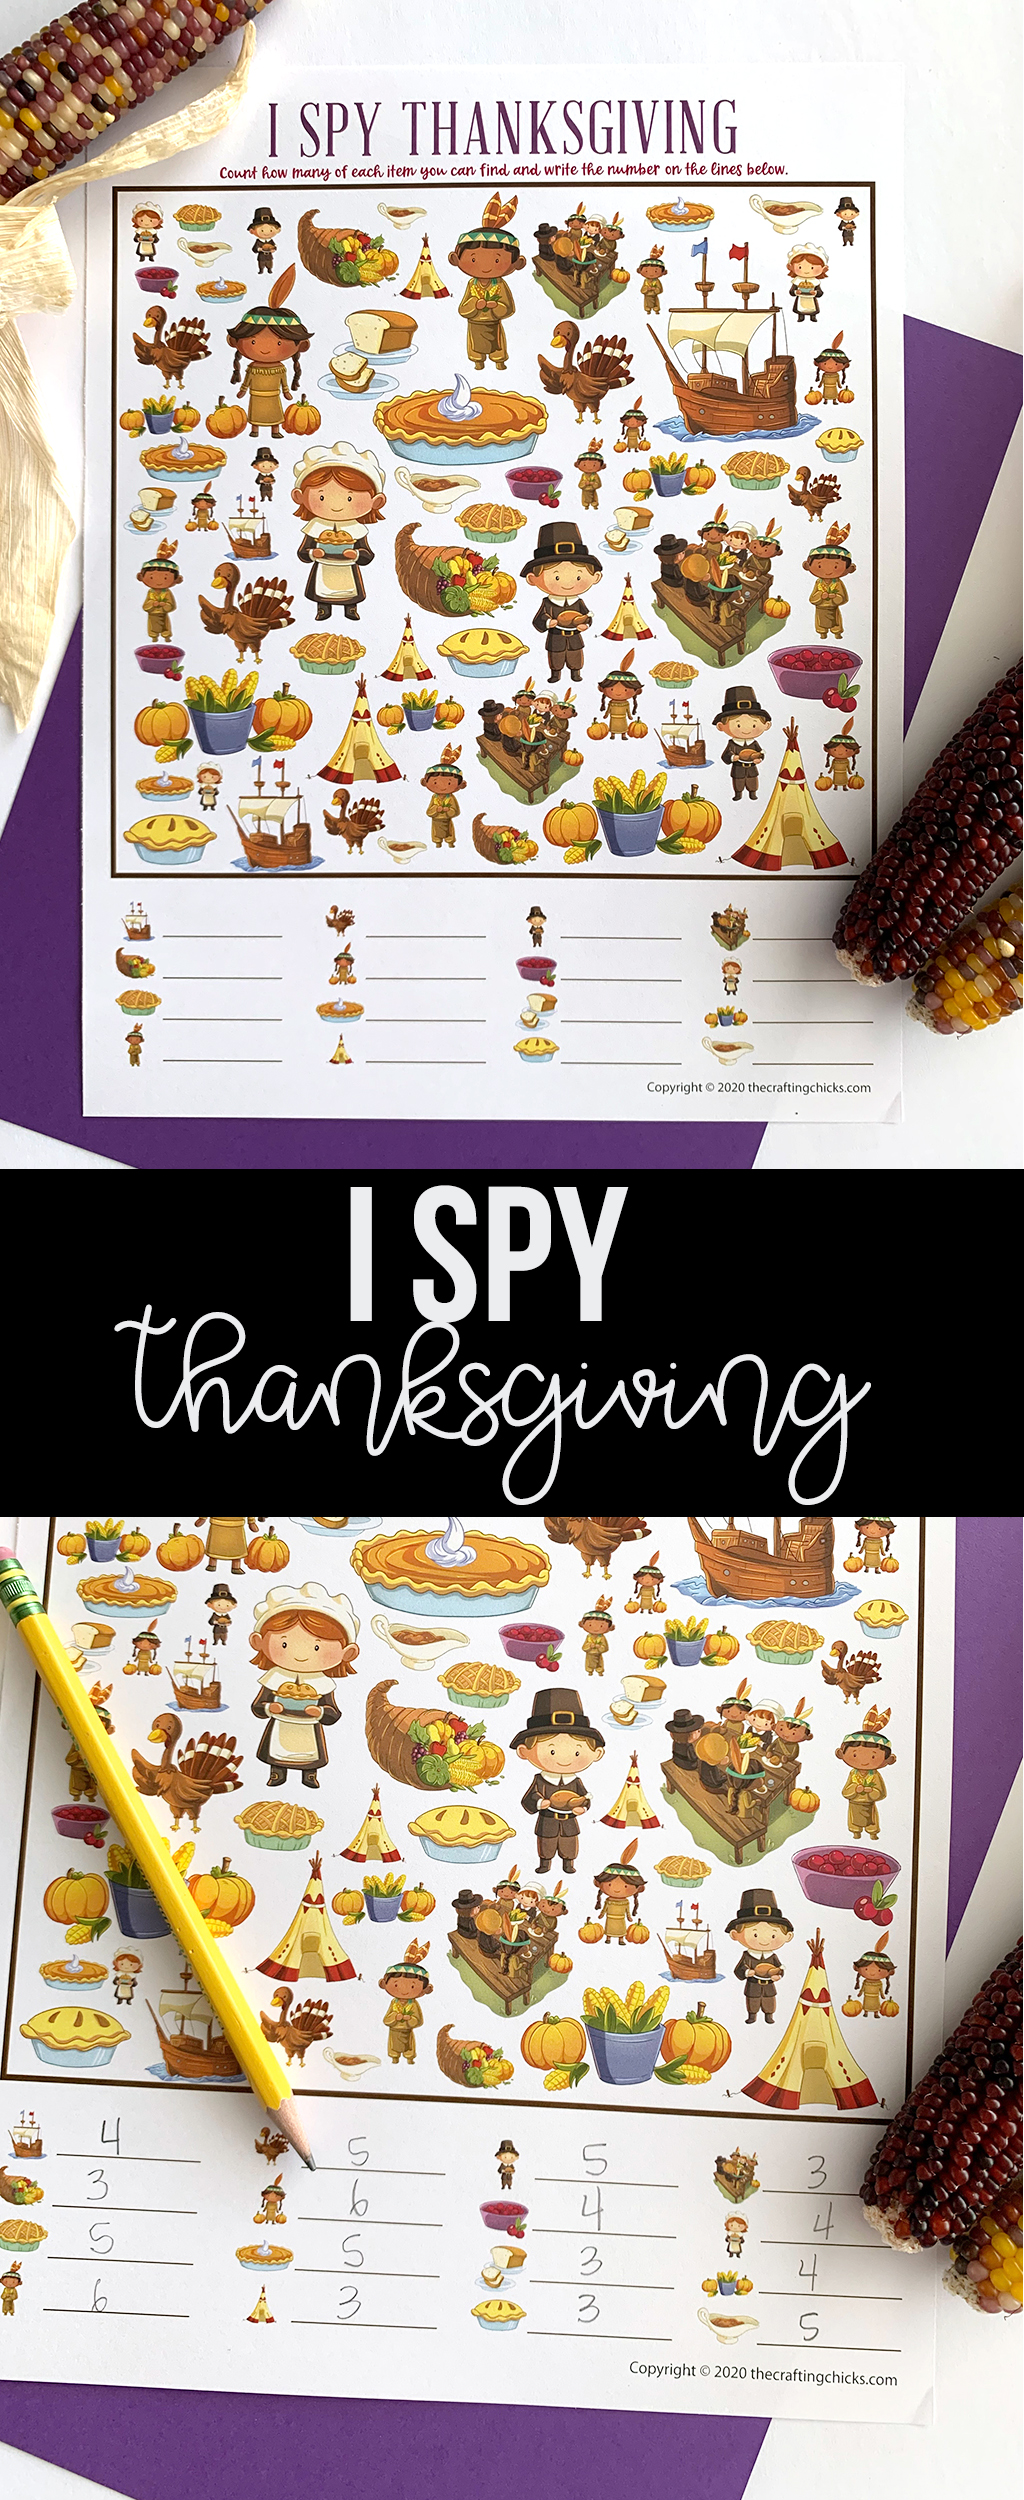 Keep those kids, big and small, busy with our Thanksgiving I-Spy Free Printable Game. Perfect for before or after the turkey, or anytime during the month of November.#thanksgiving #thanksgivingprintables #thanksgivingprintablegame